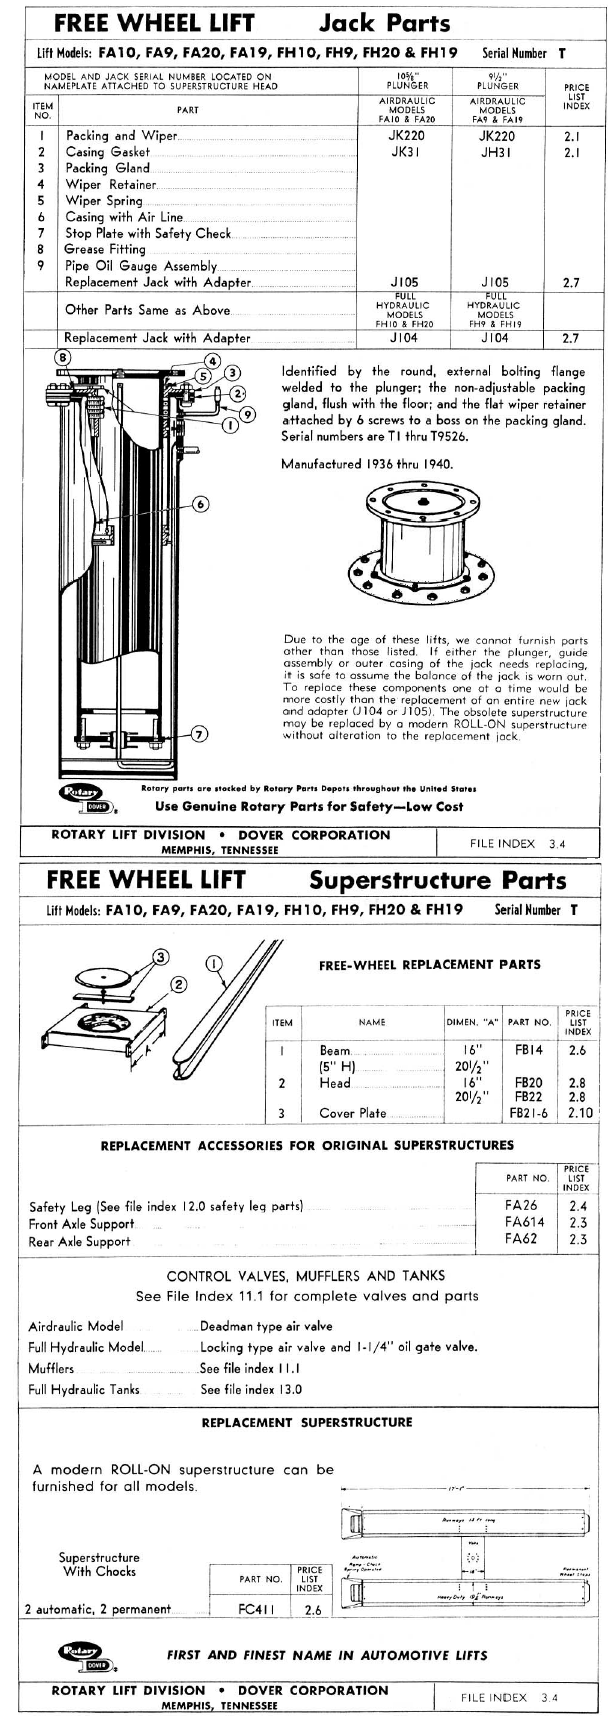 In Ground Lift Parts : Parts diagram for rotary fa fh